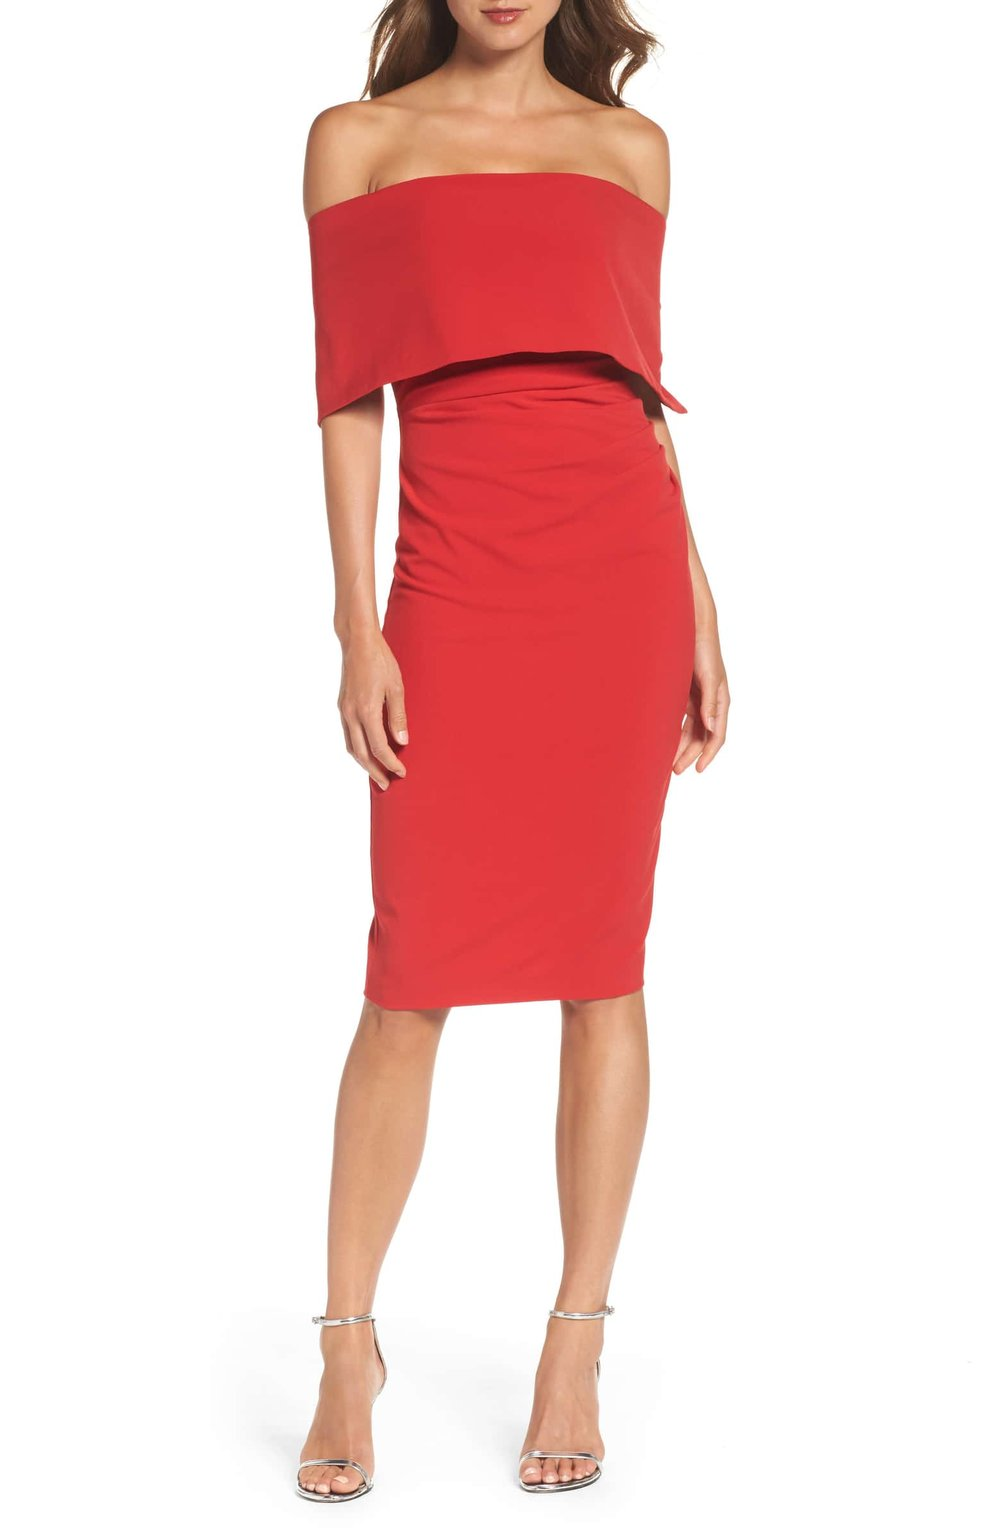 vince camuto midi dress red.jpg